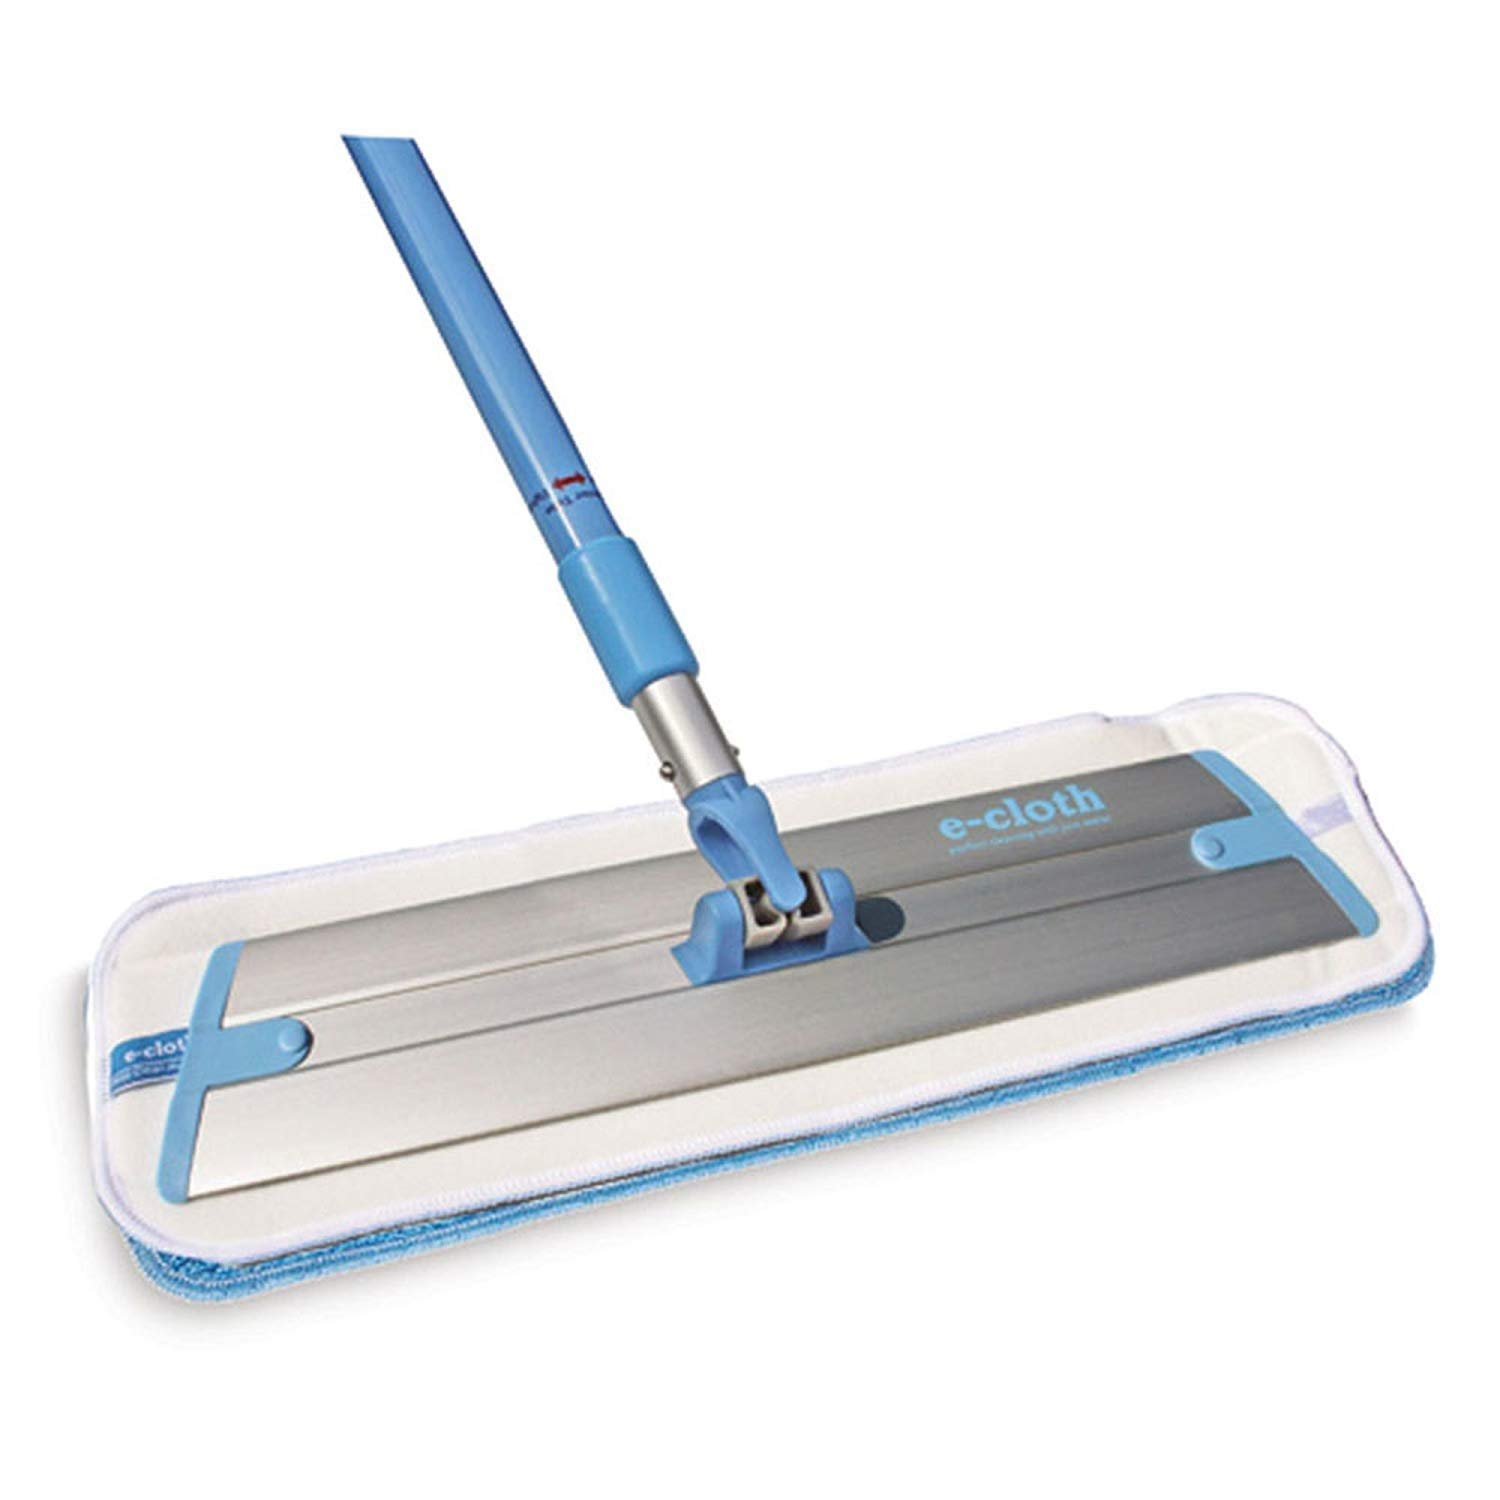 TVP Clean Mop, Perfect Chemical Free Cleaning With Just Water, 99% Antibacterial